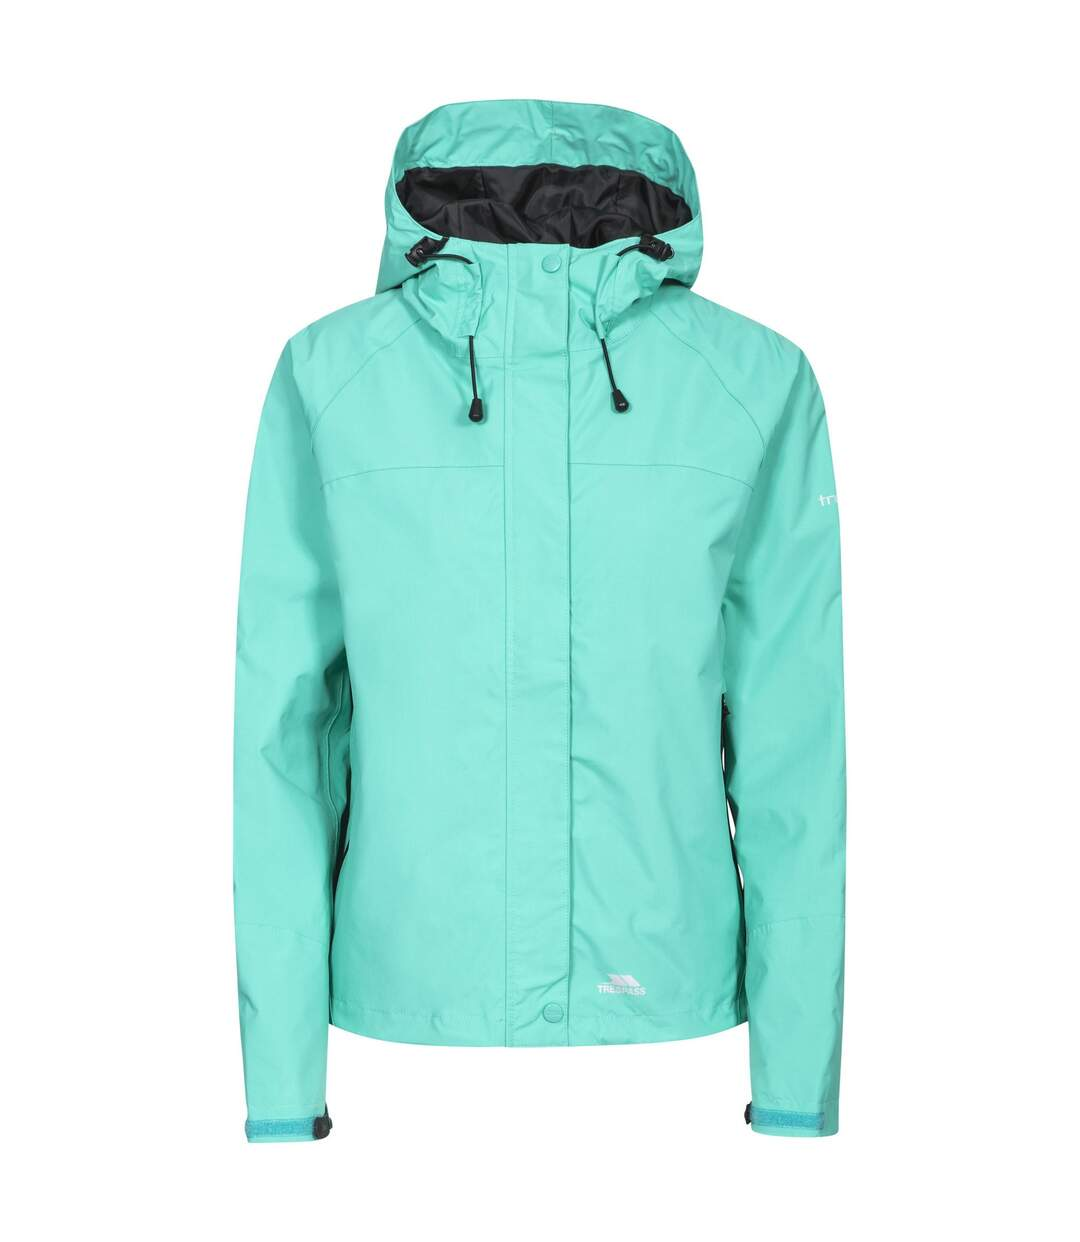 Trespass Womens/Ladies Miyake Hooded Waterproof Jacket (Lagoon) - UTTP165